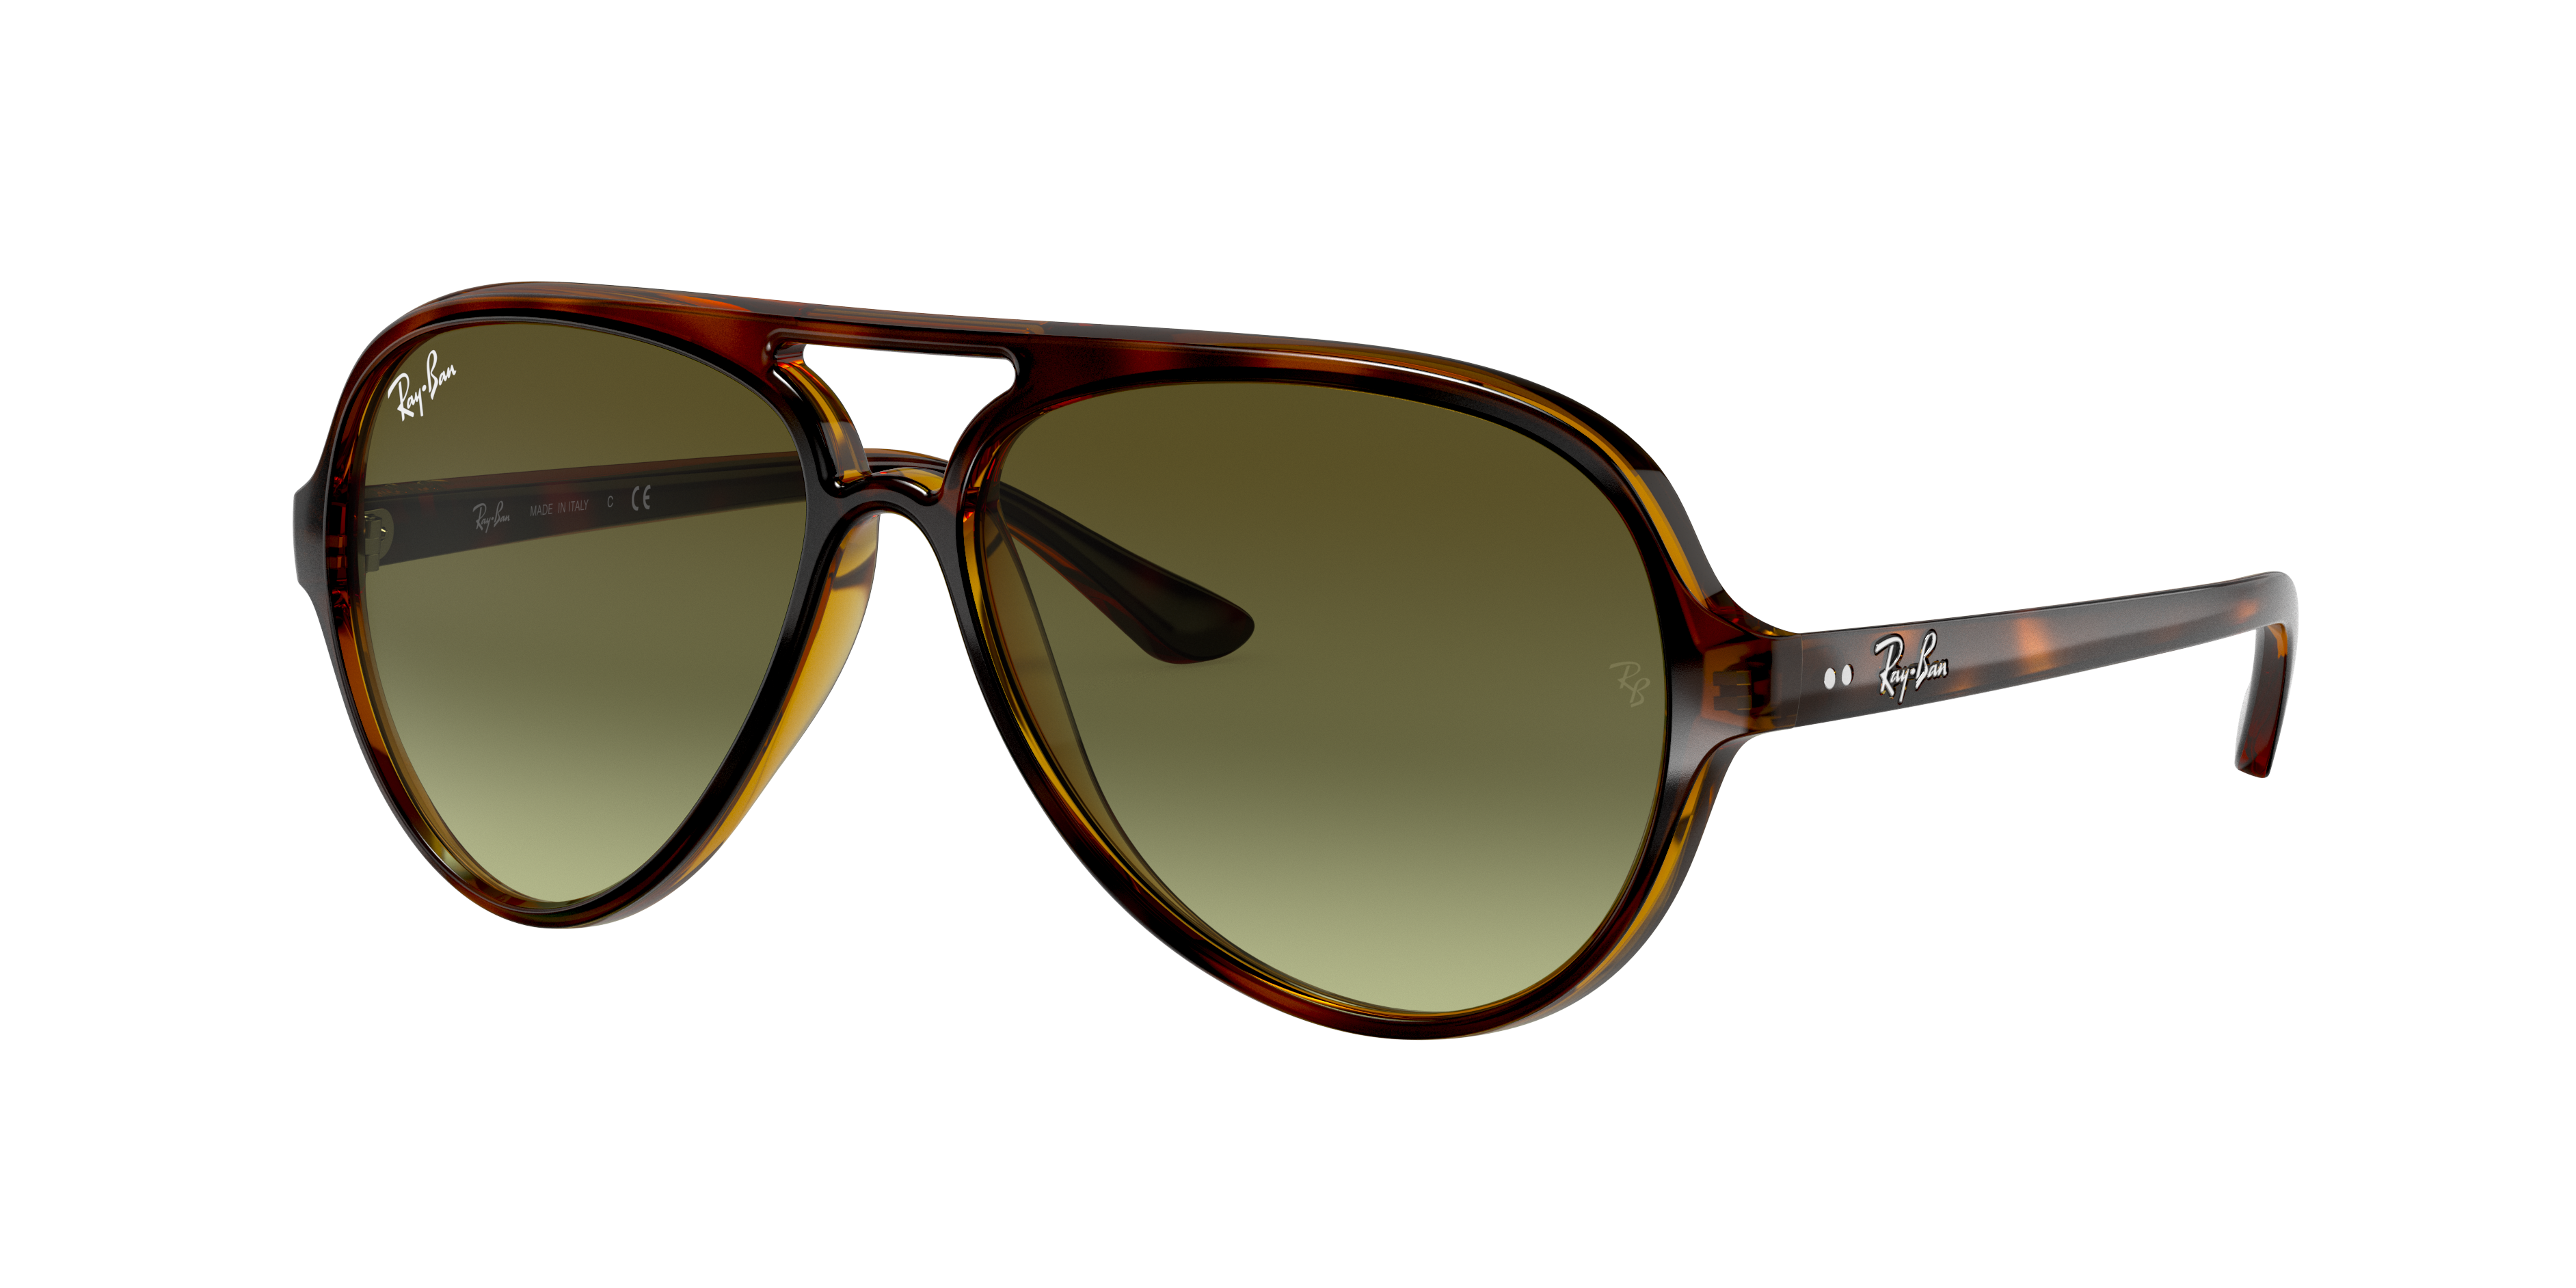 Ray-Ban Cats 5000 Classic Tortoise, Green Lenses - RB4125